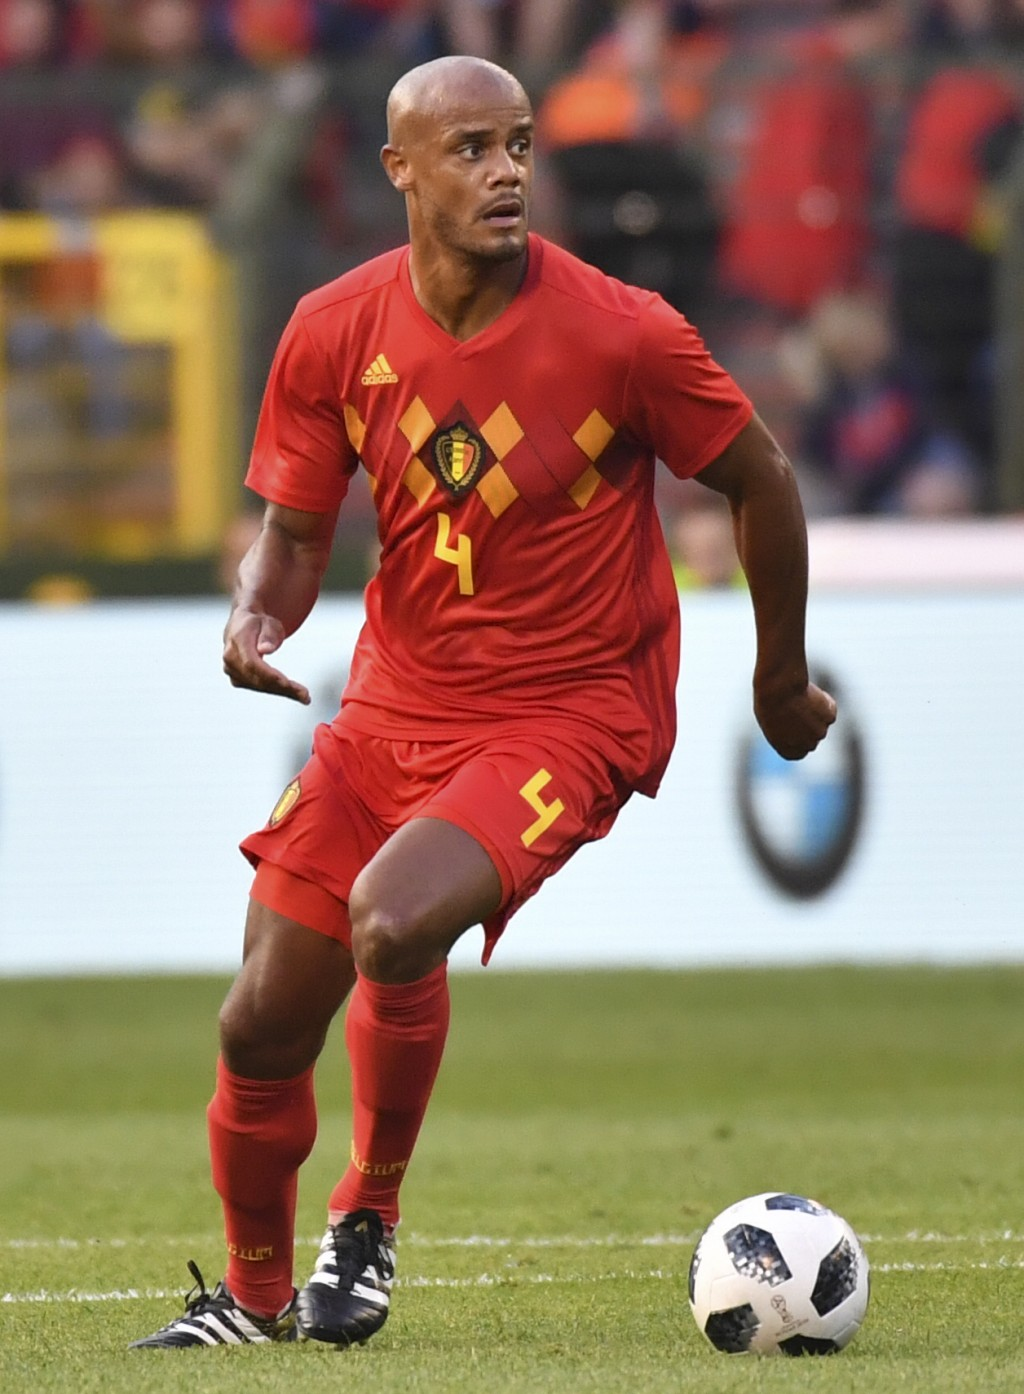 Belgium's Vincent Kompany kicks the ball during a friendly soccer match between Belgium and Portugal at the King Baudouin stadium in Brussels, Saturda...